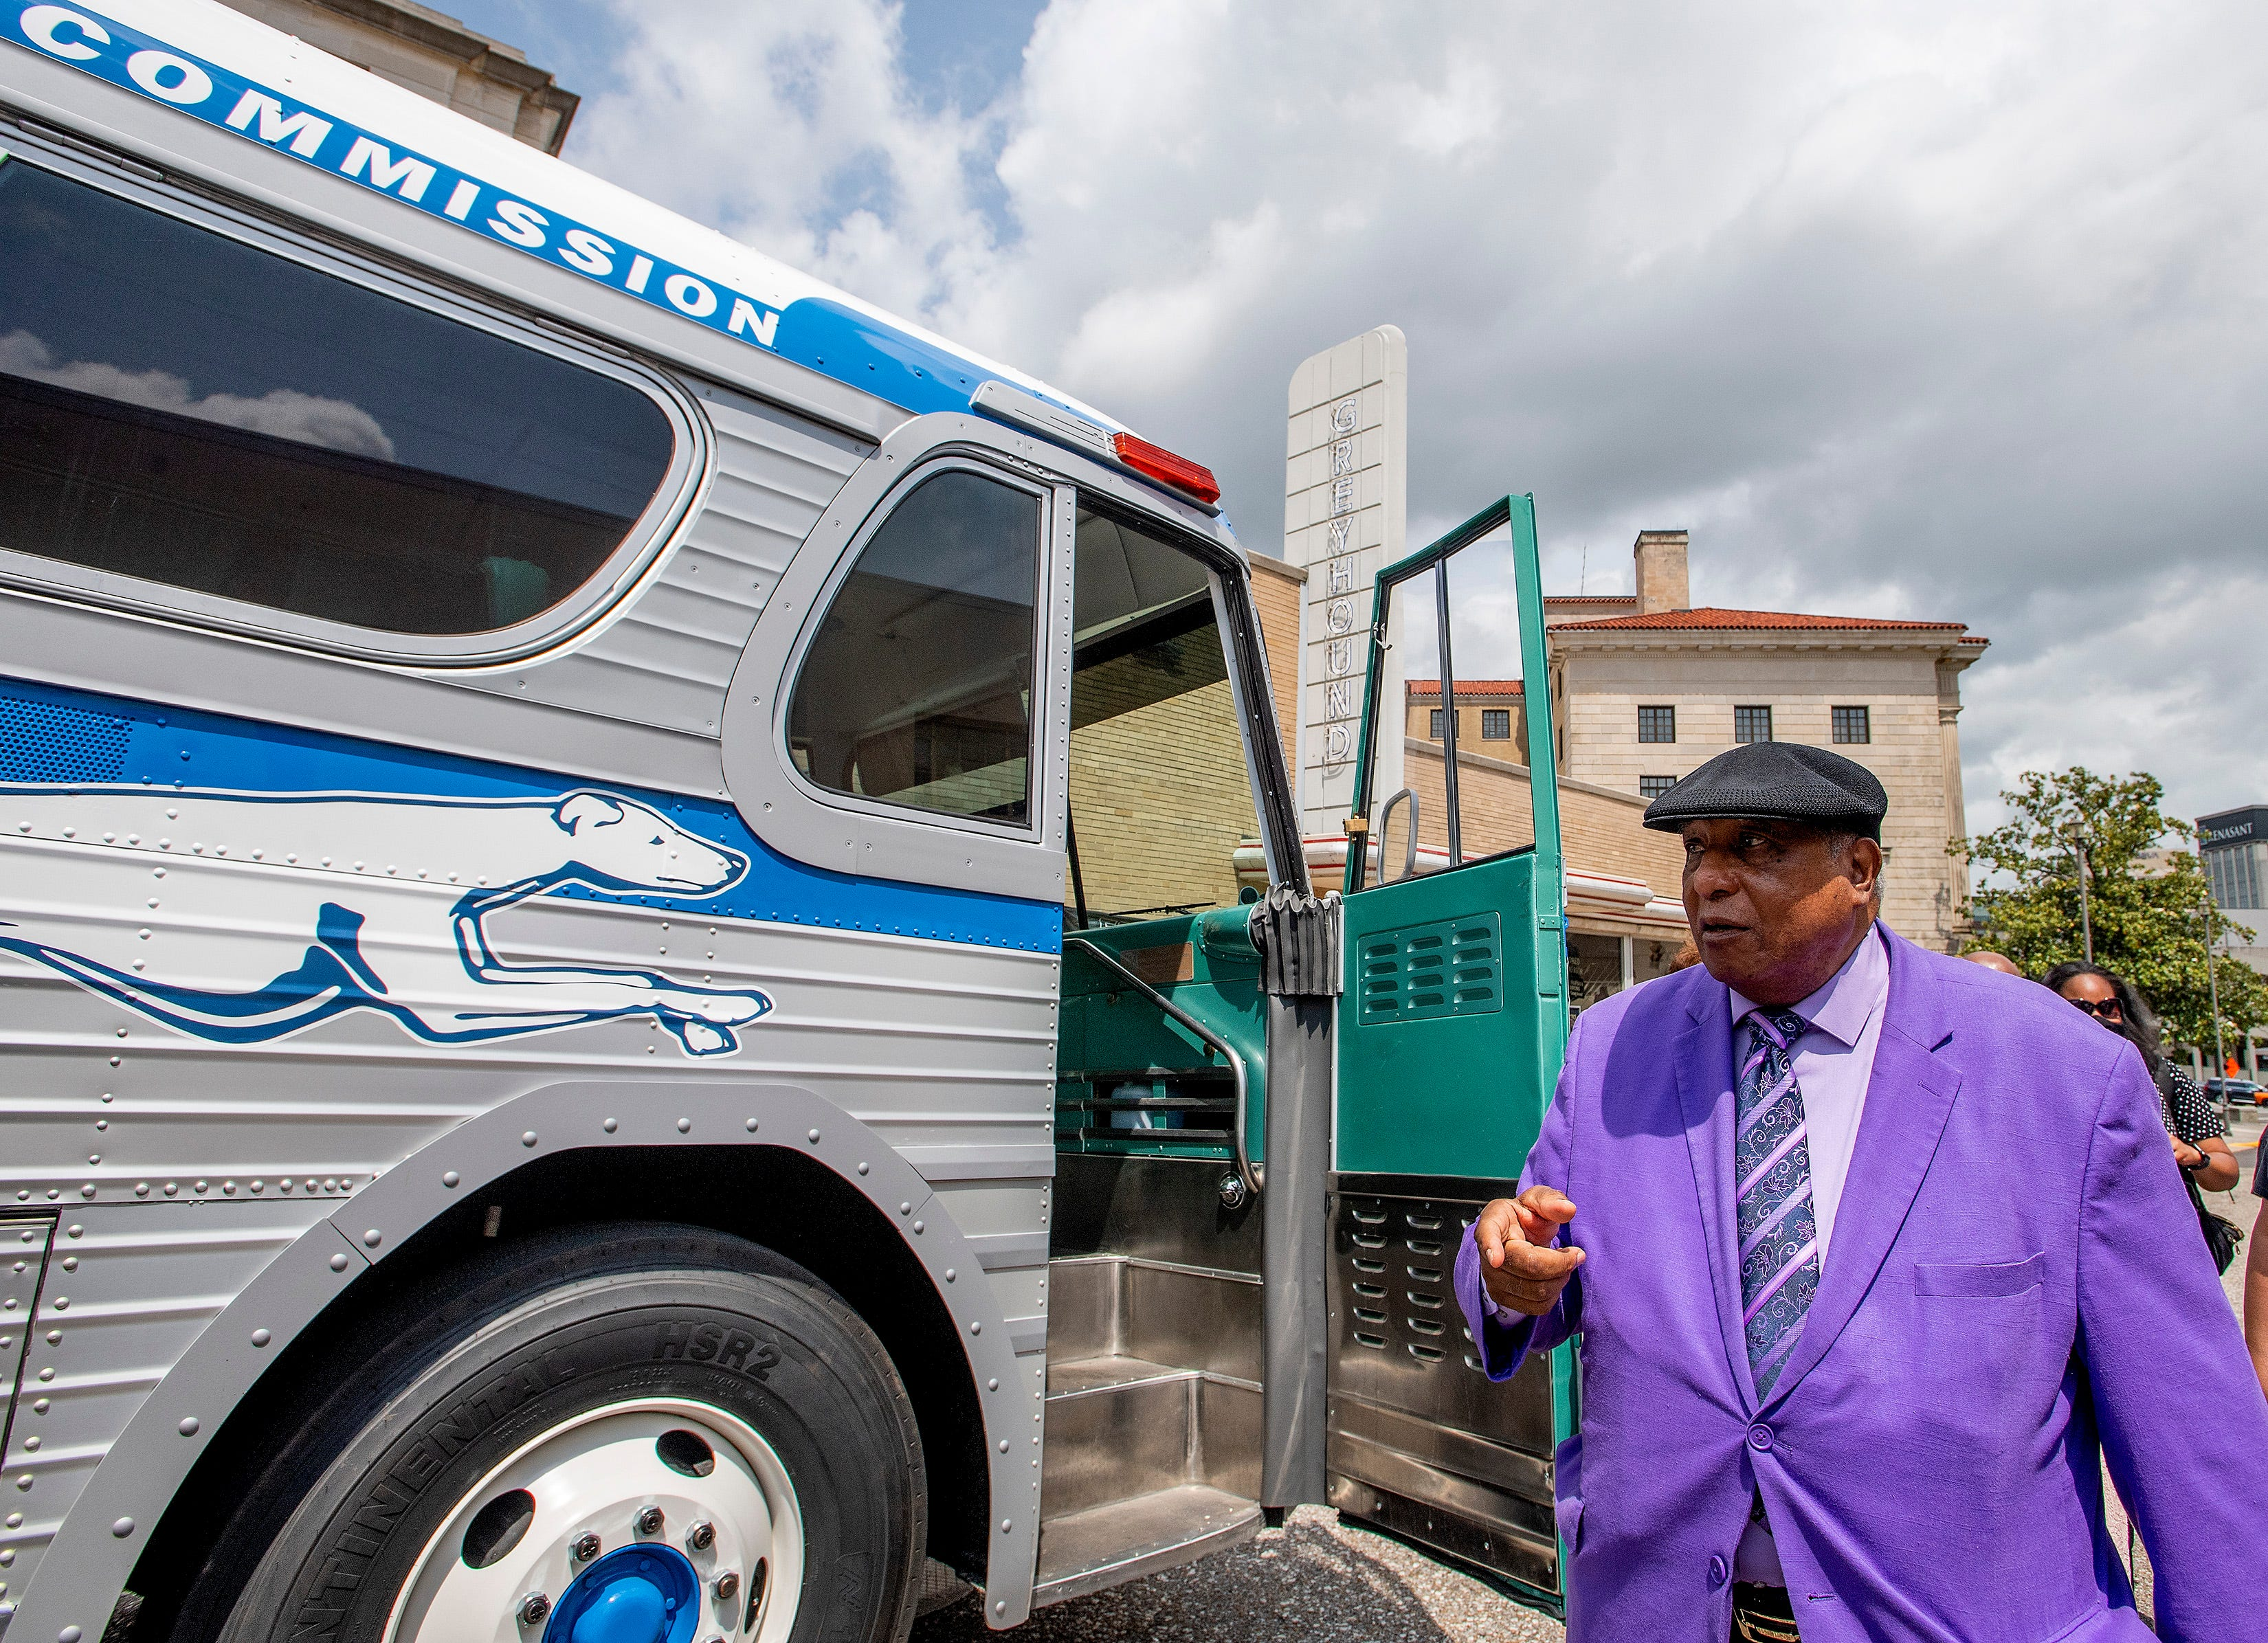 Freedom Rider Bernard Lafayette, Jr., speaks as a restored vintage Greyhound bus is unveiled at the Freedom Rides Museum in Montgomery, Ala., during a commemoration of the 60th anniversary of the Freedom Rides on Tuesday May 4, 2021.